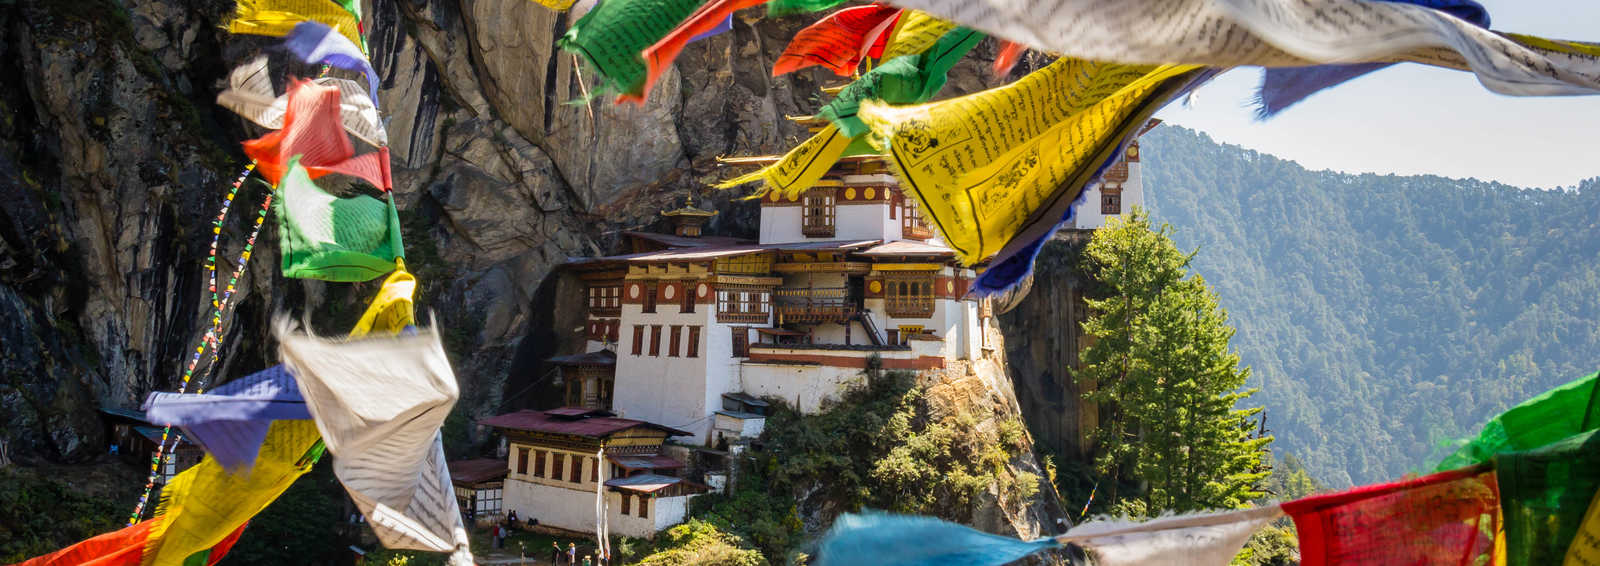 Tiger's Nest in Bhutan